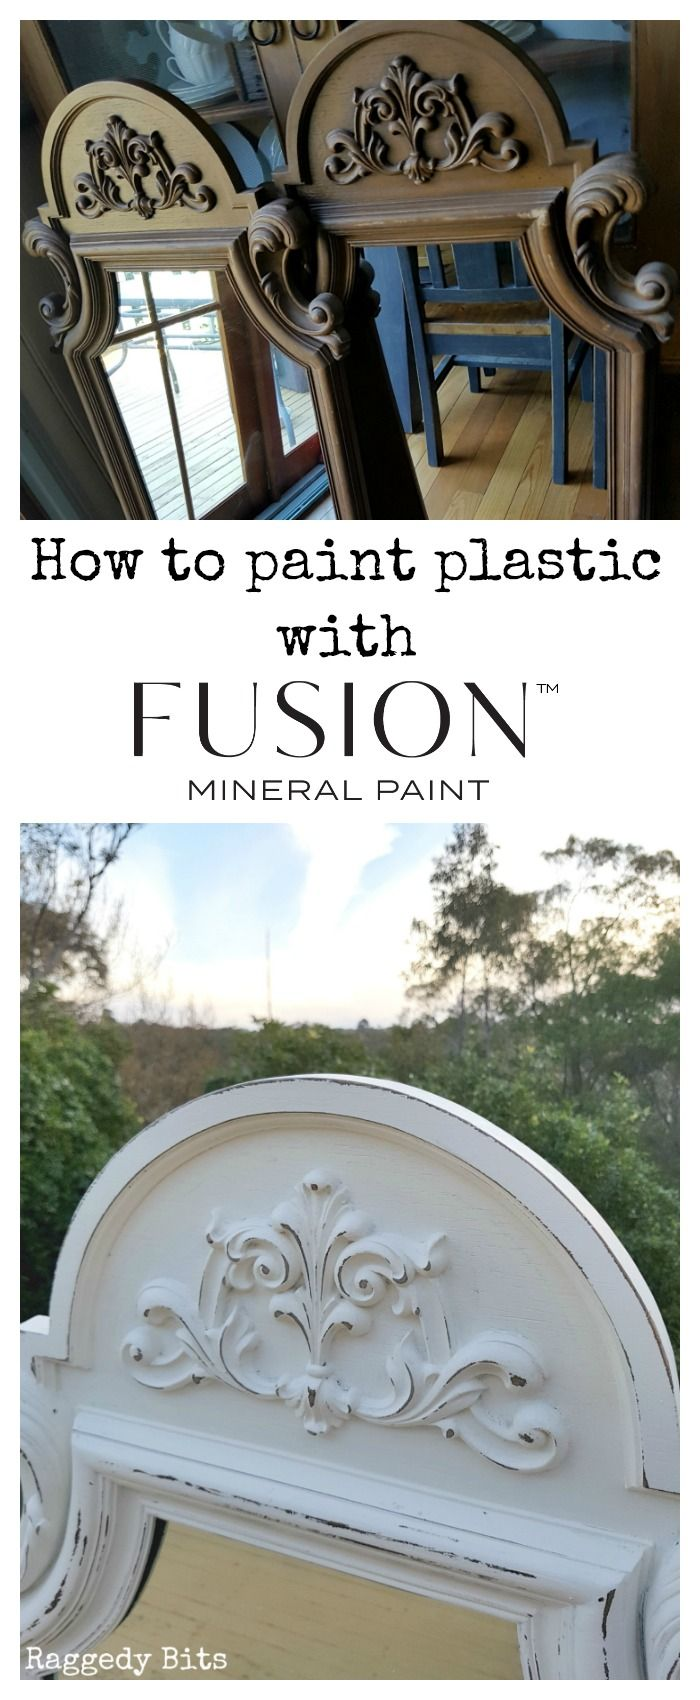 How to Paint Plastic with Fusion Mineral Paint | Pinterest ...